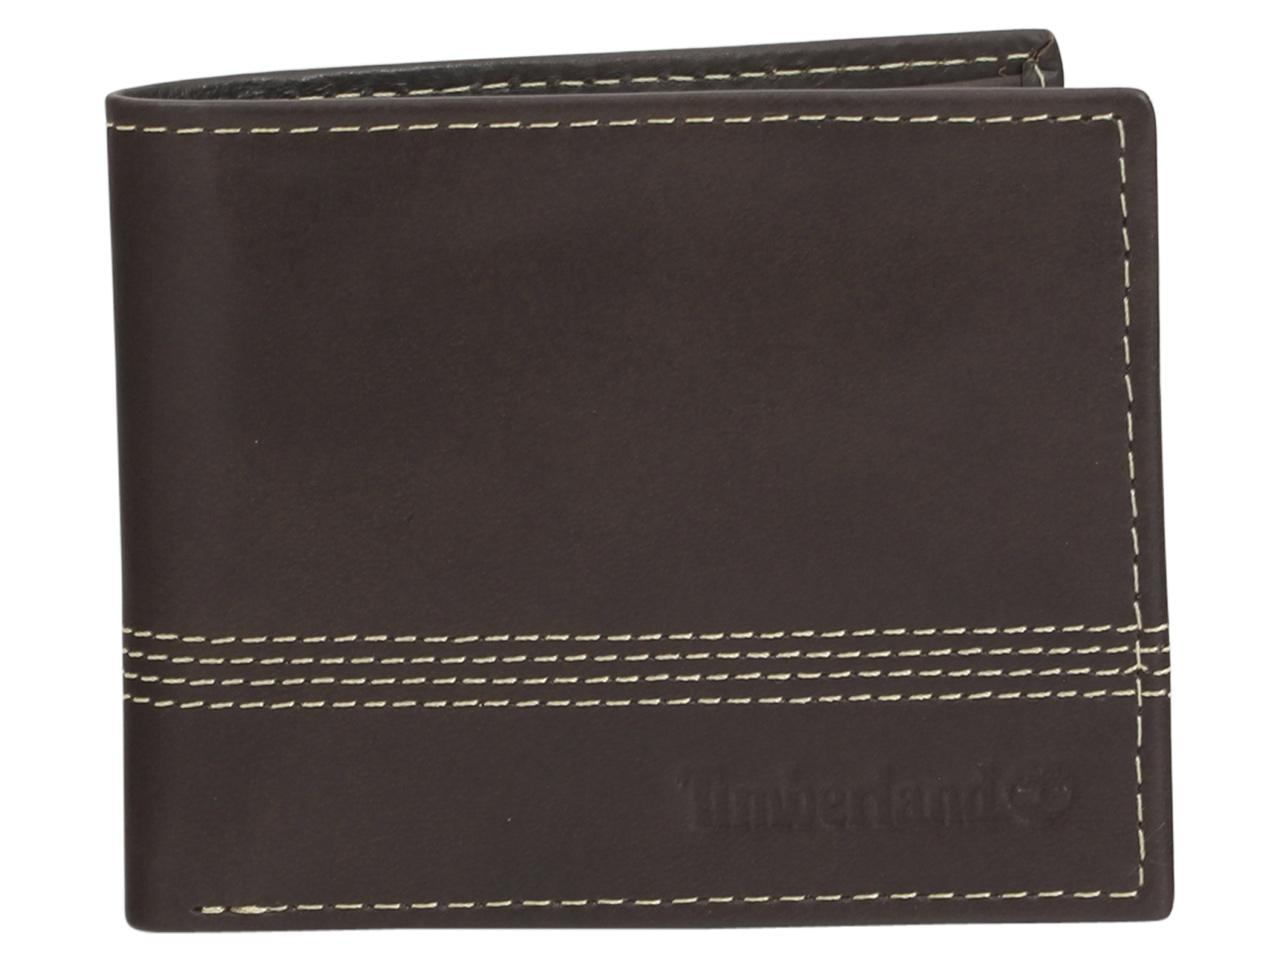 Timberland Men's Cloudy Quad Genuine Leather Bifold Wallet